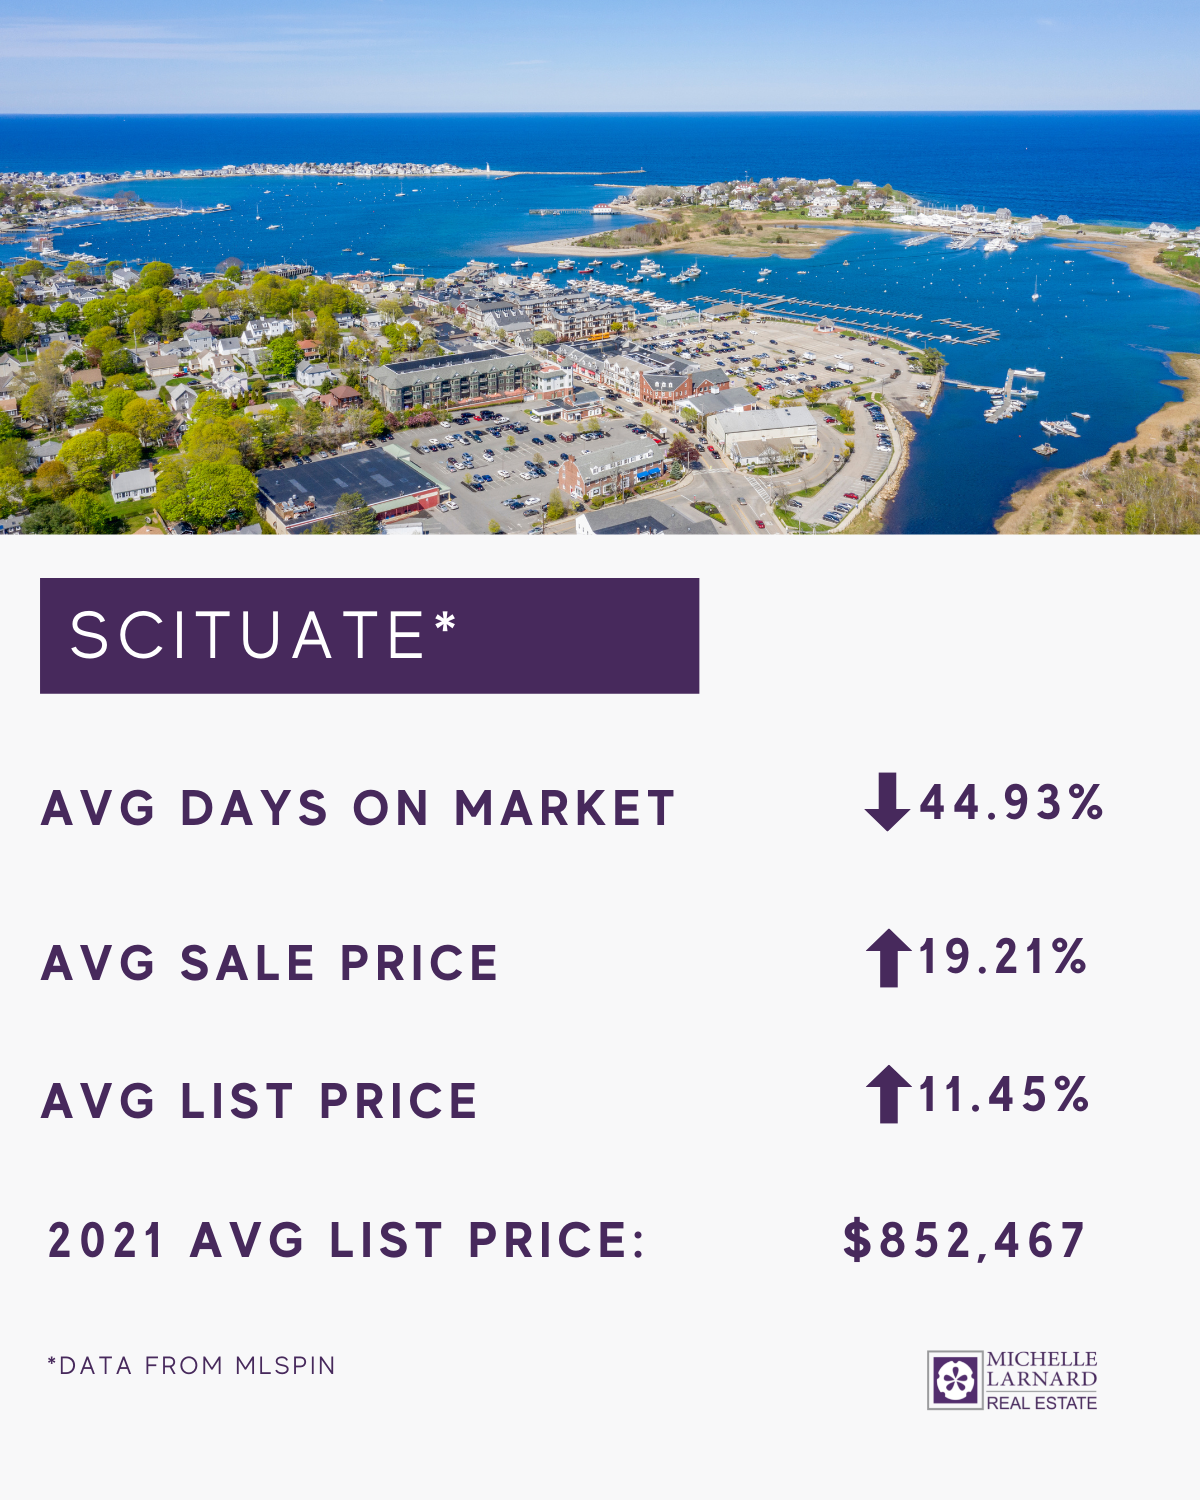 scituate real estate